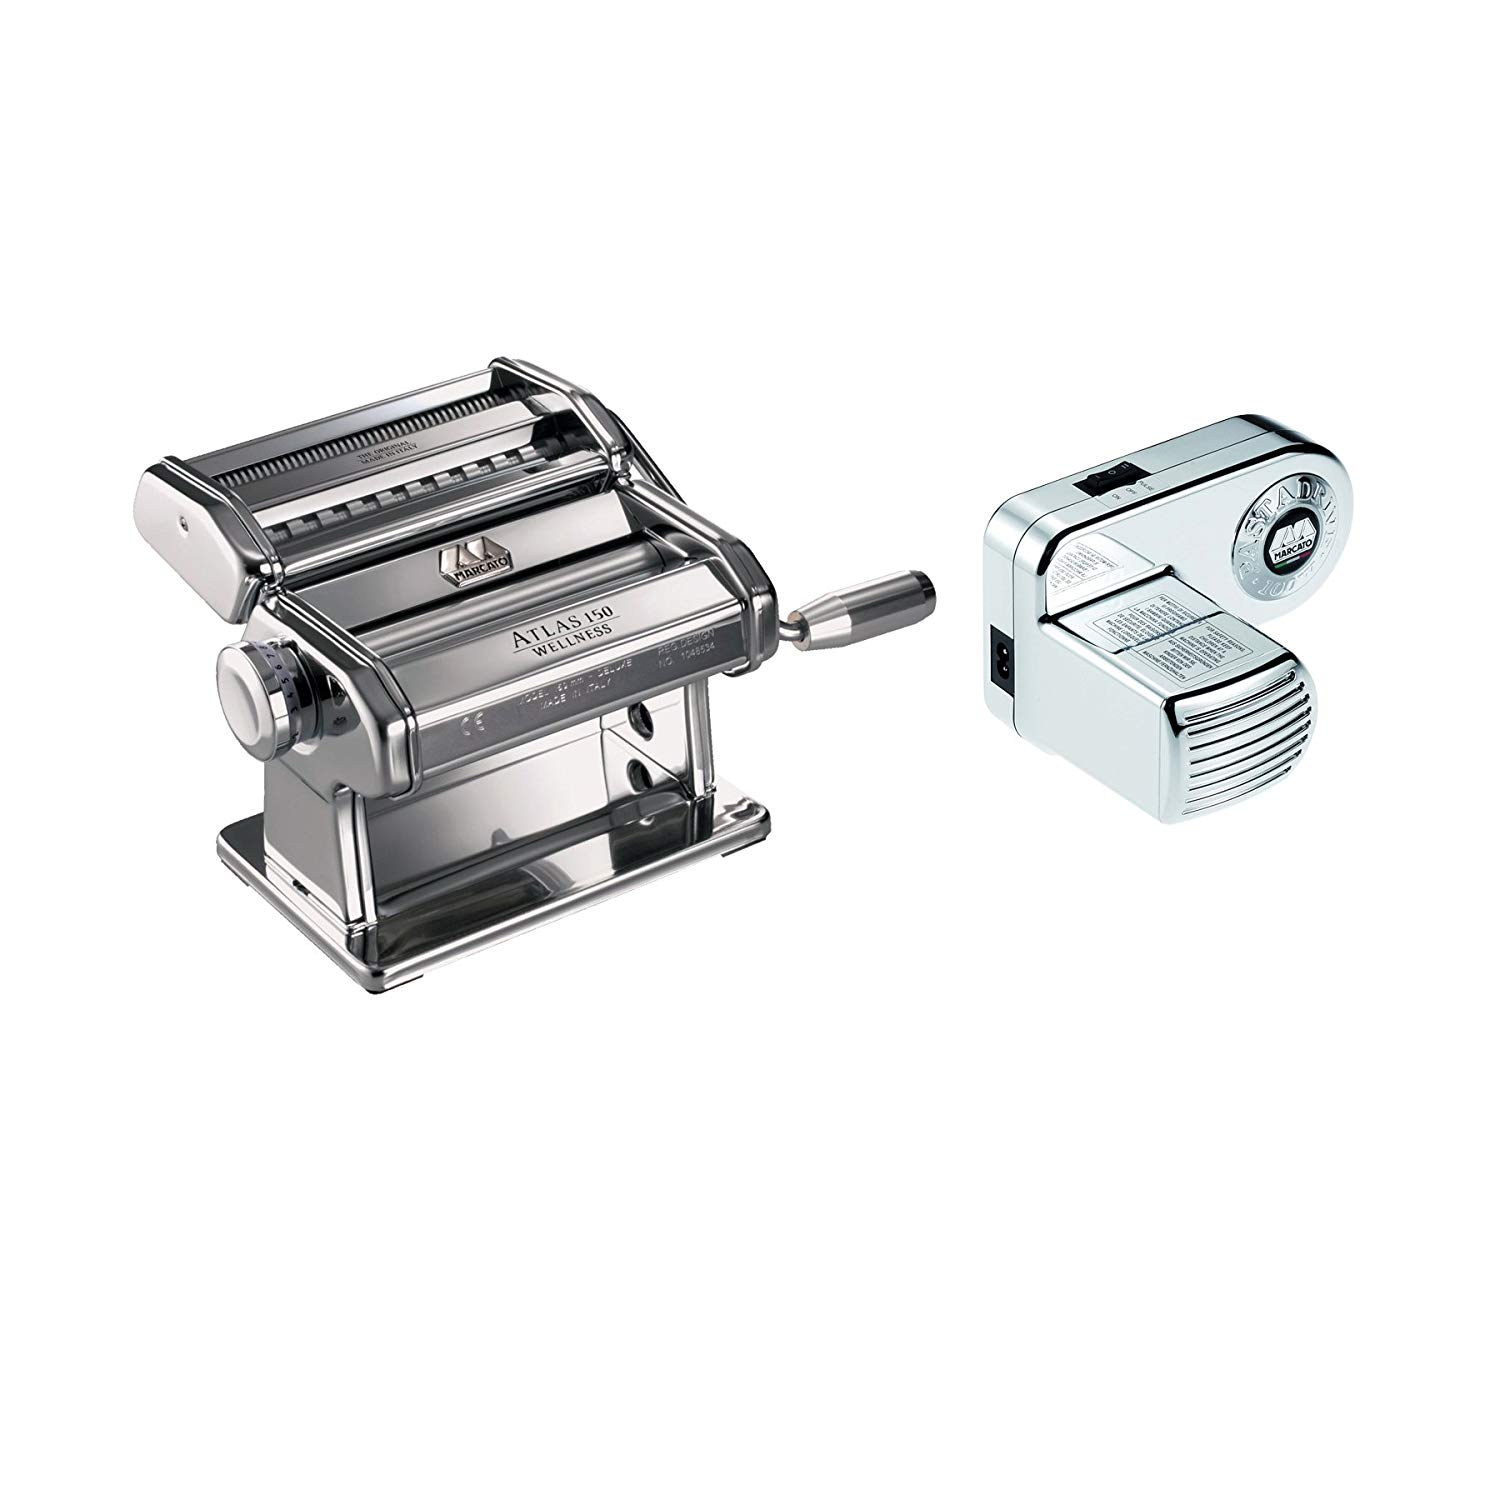 Marcato Atlas Hand Crank Pasta Machine Silver w/Pasta Cutter & Electric Motor Attachment